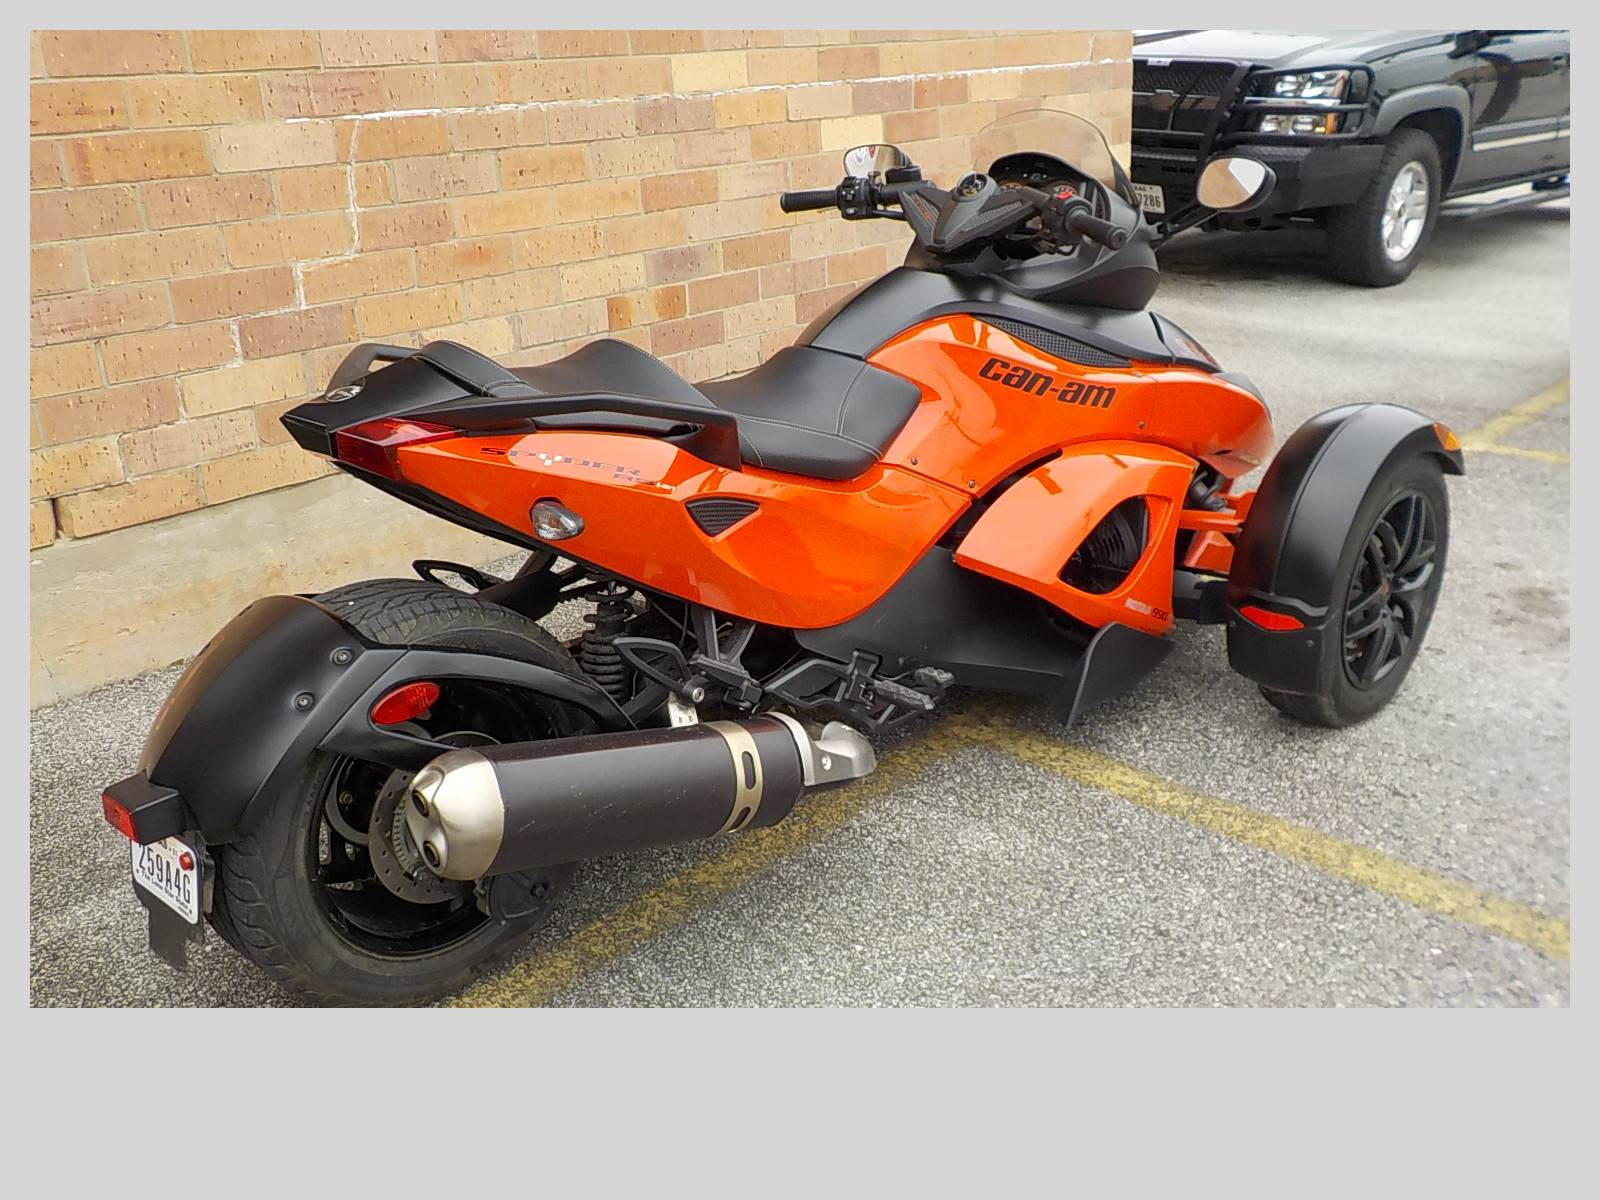 2012 Can-Am Spyder® RS-S SM5 in San Antonio, Texas - Photo 5